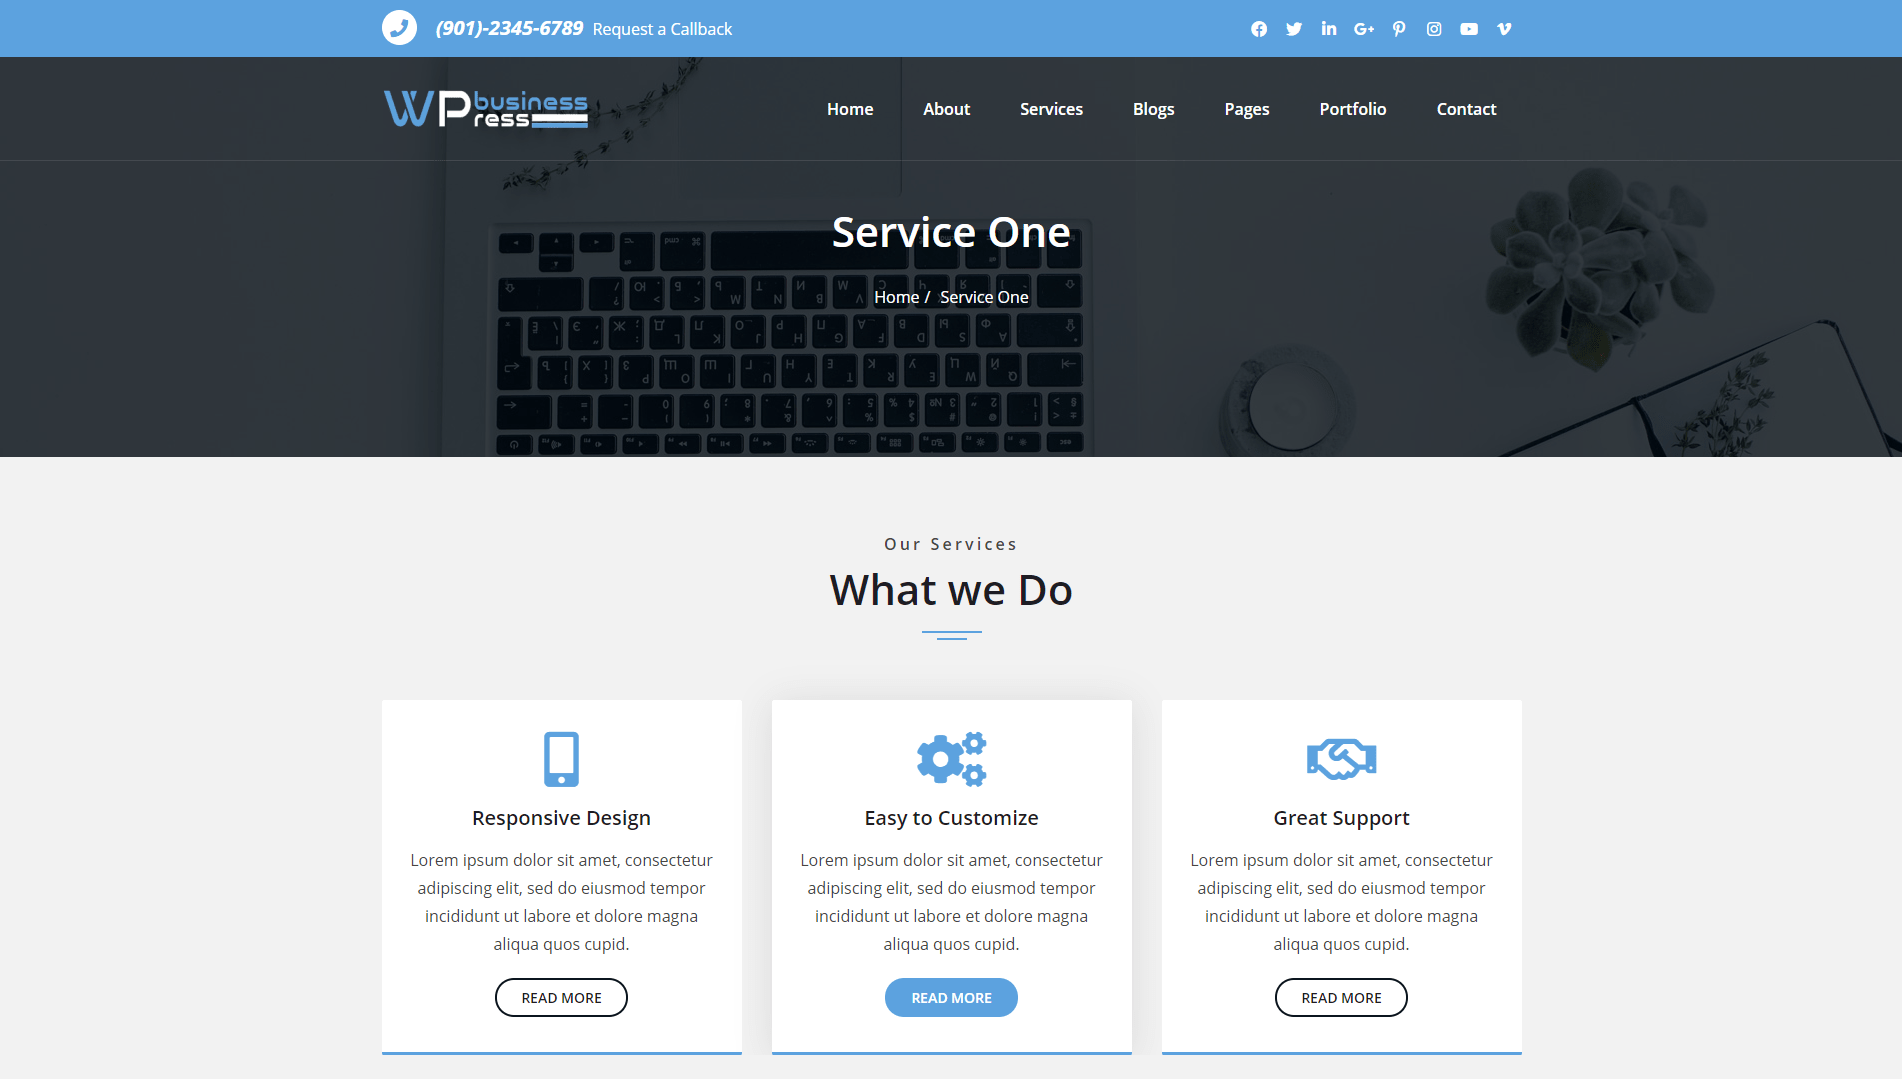 Service One